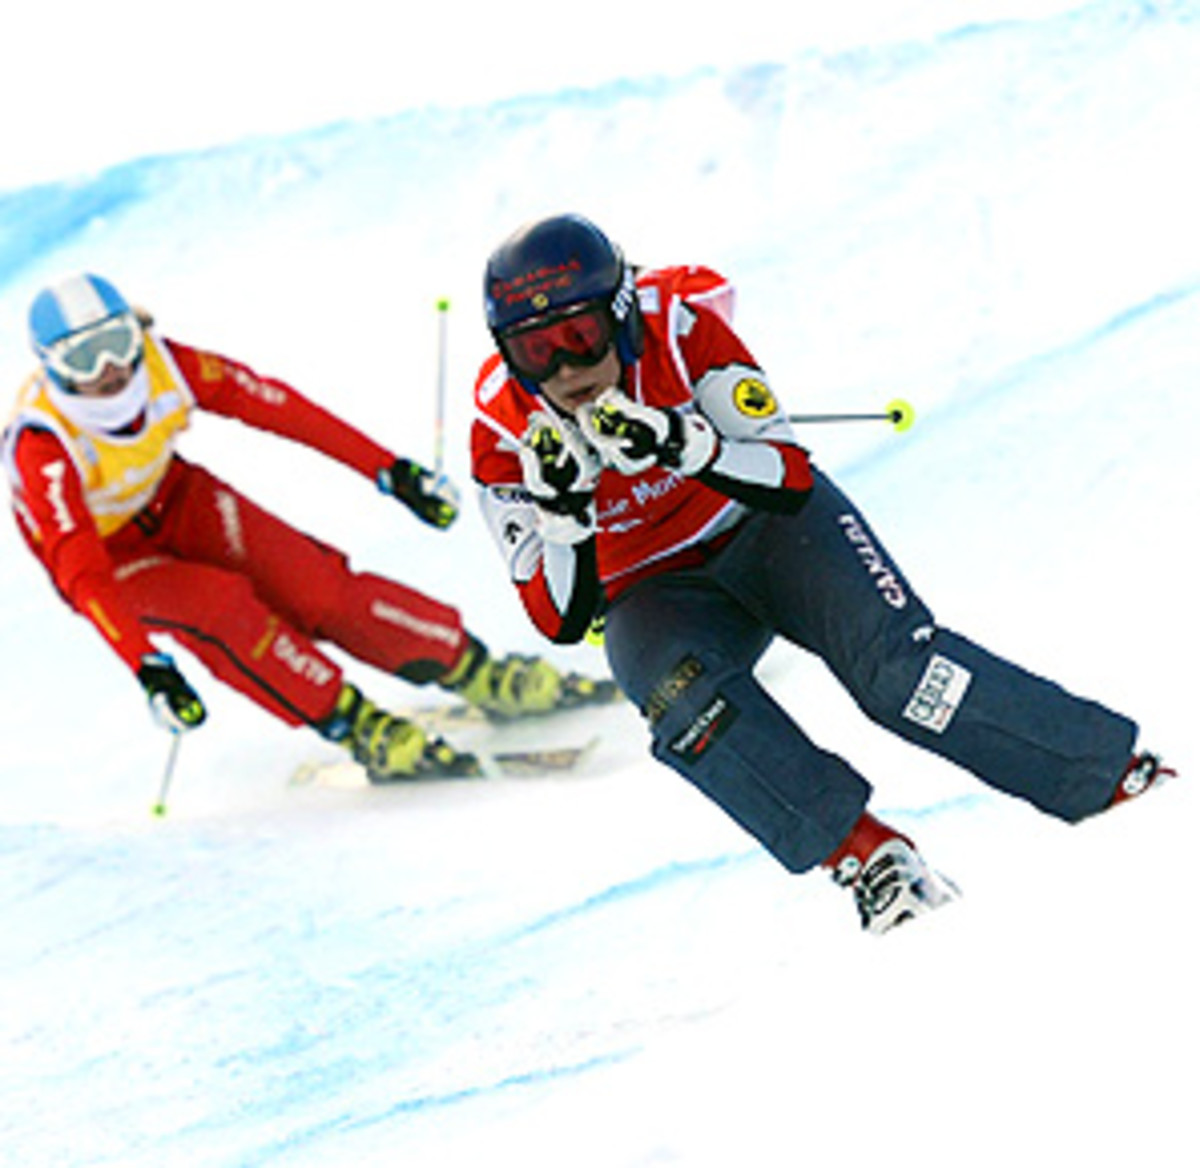 Canada's Kelsey Serwa storms down the mountain to her second ski cross title of the season.